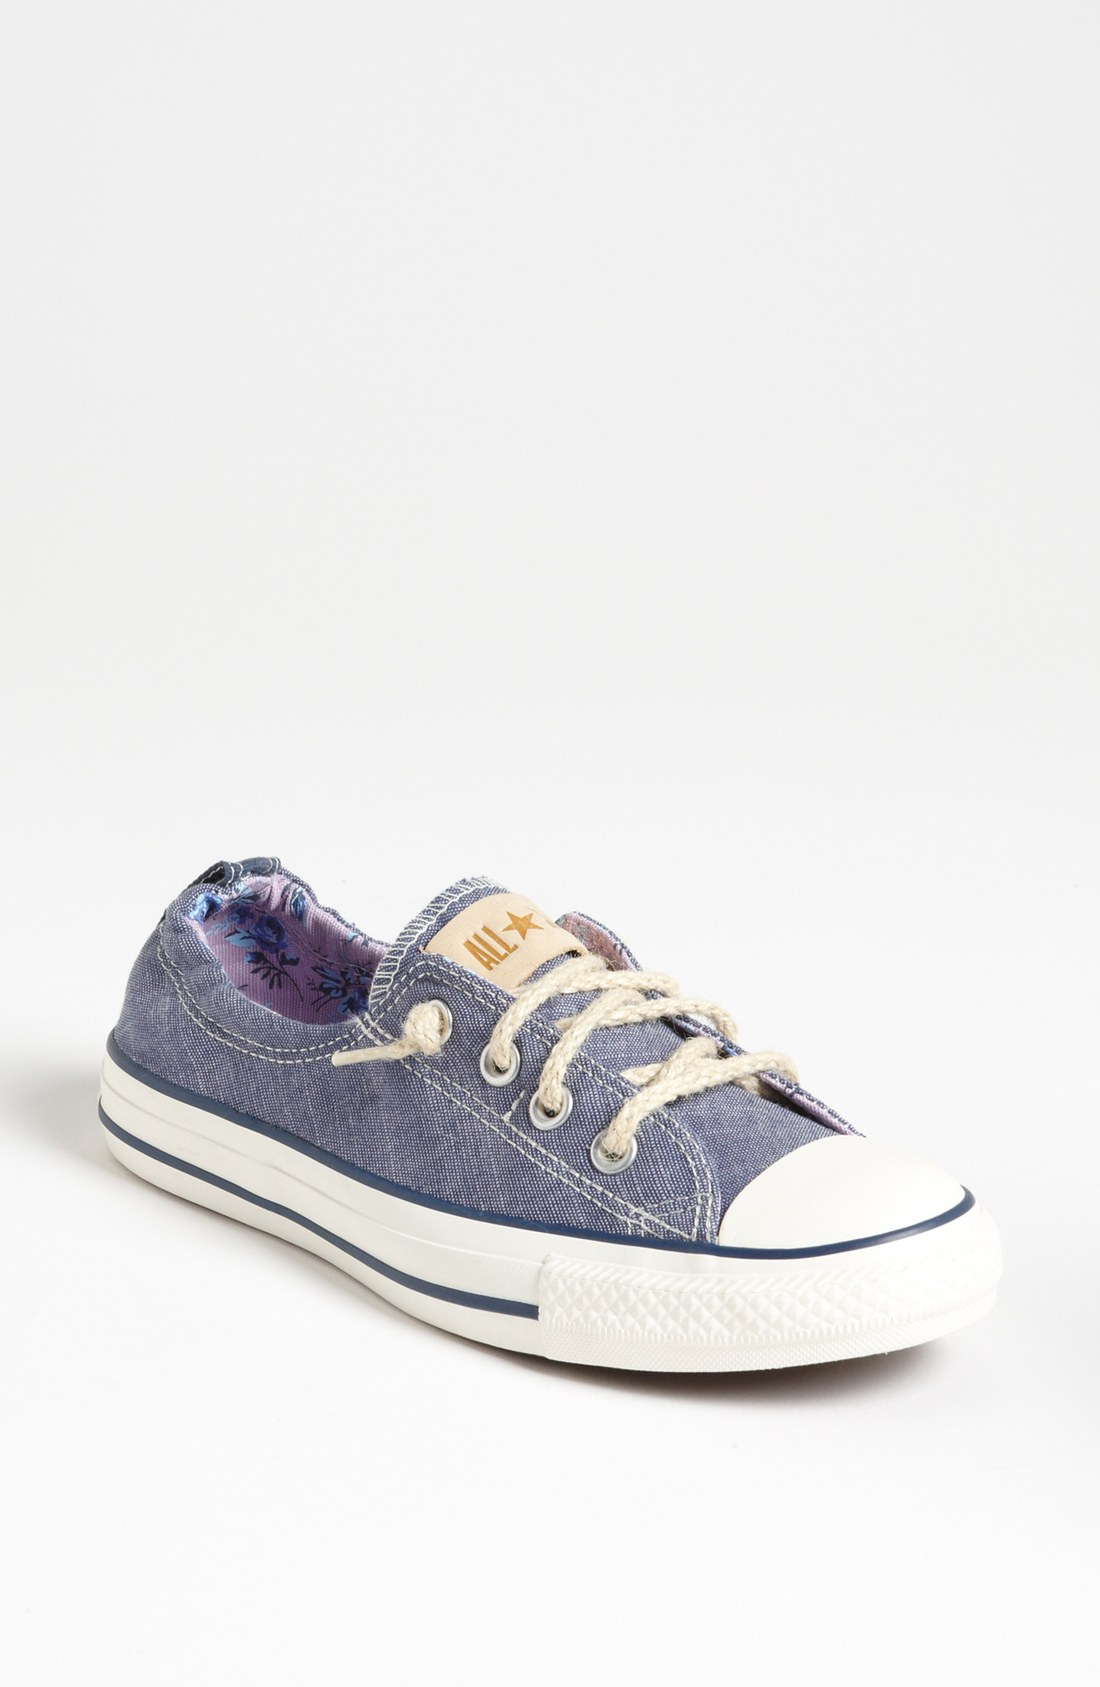 converse chuck taylor shoreline sneaker women in blue dark denim lyst. Black Bedroom Furniture Sets. Home Design Ideas